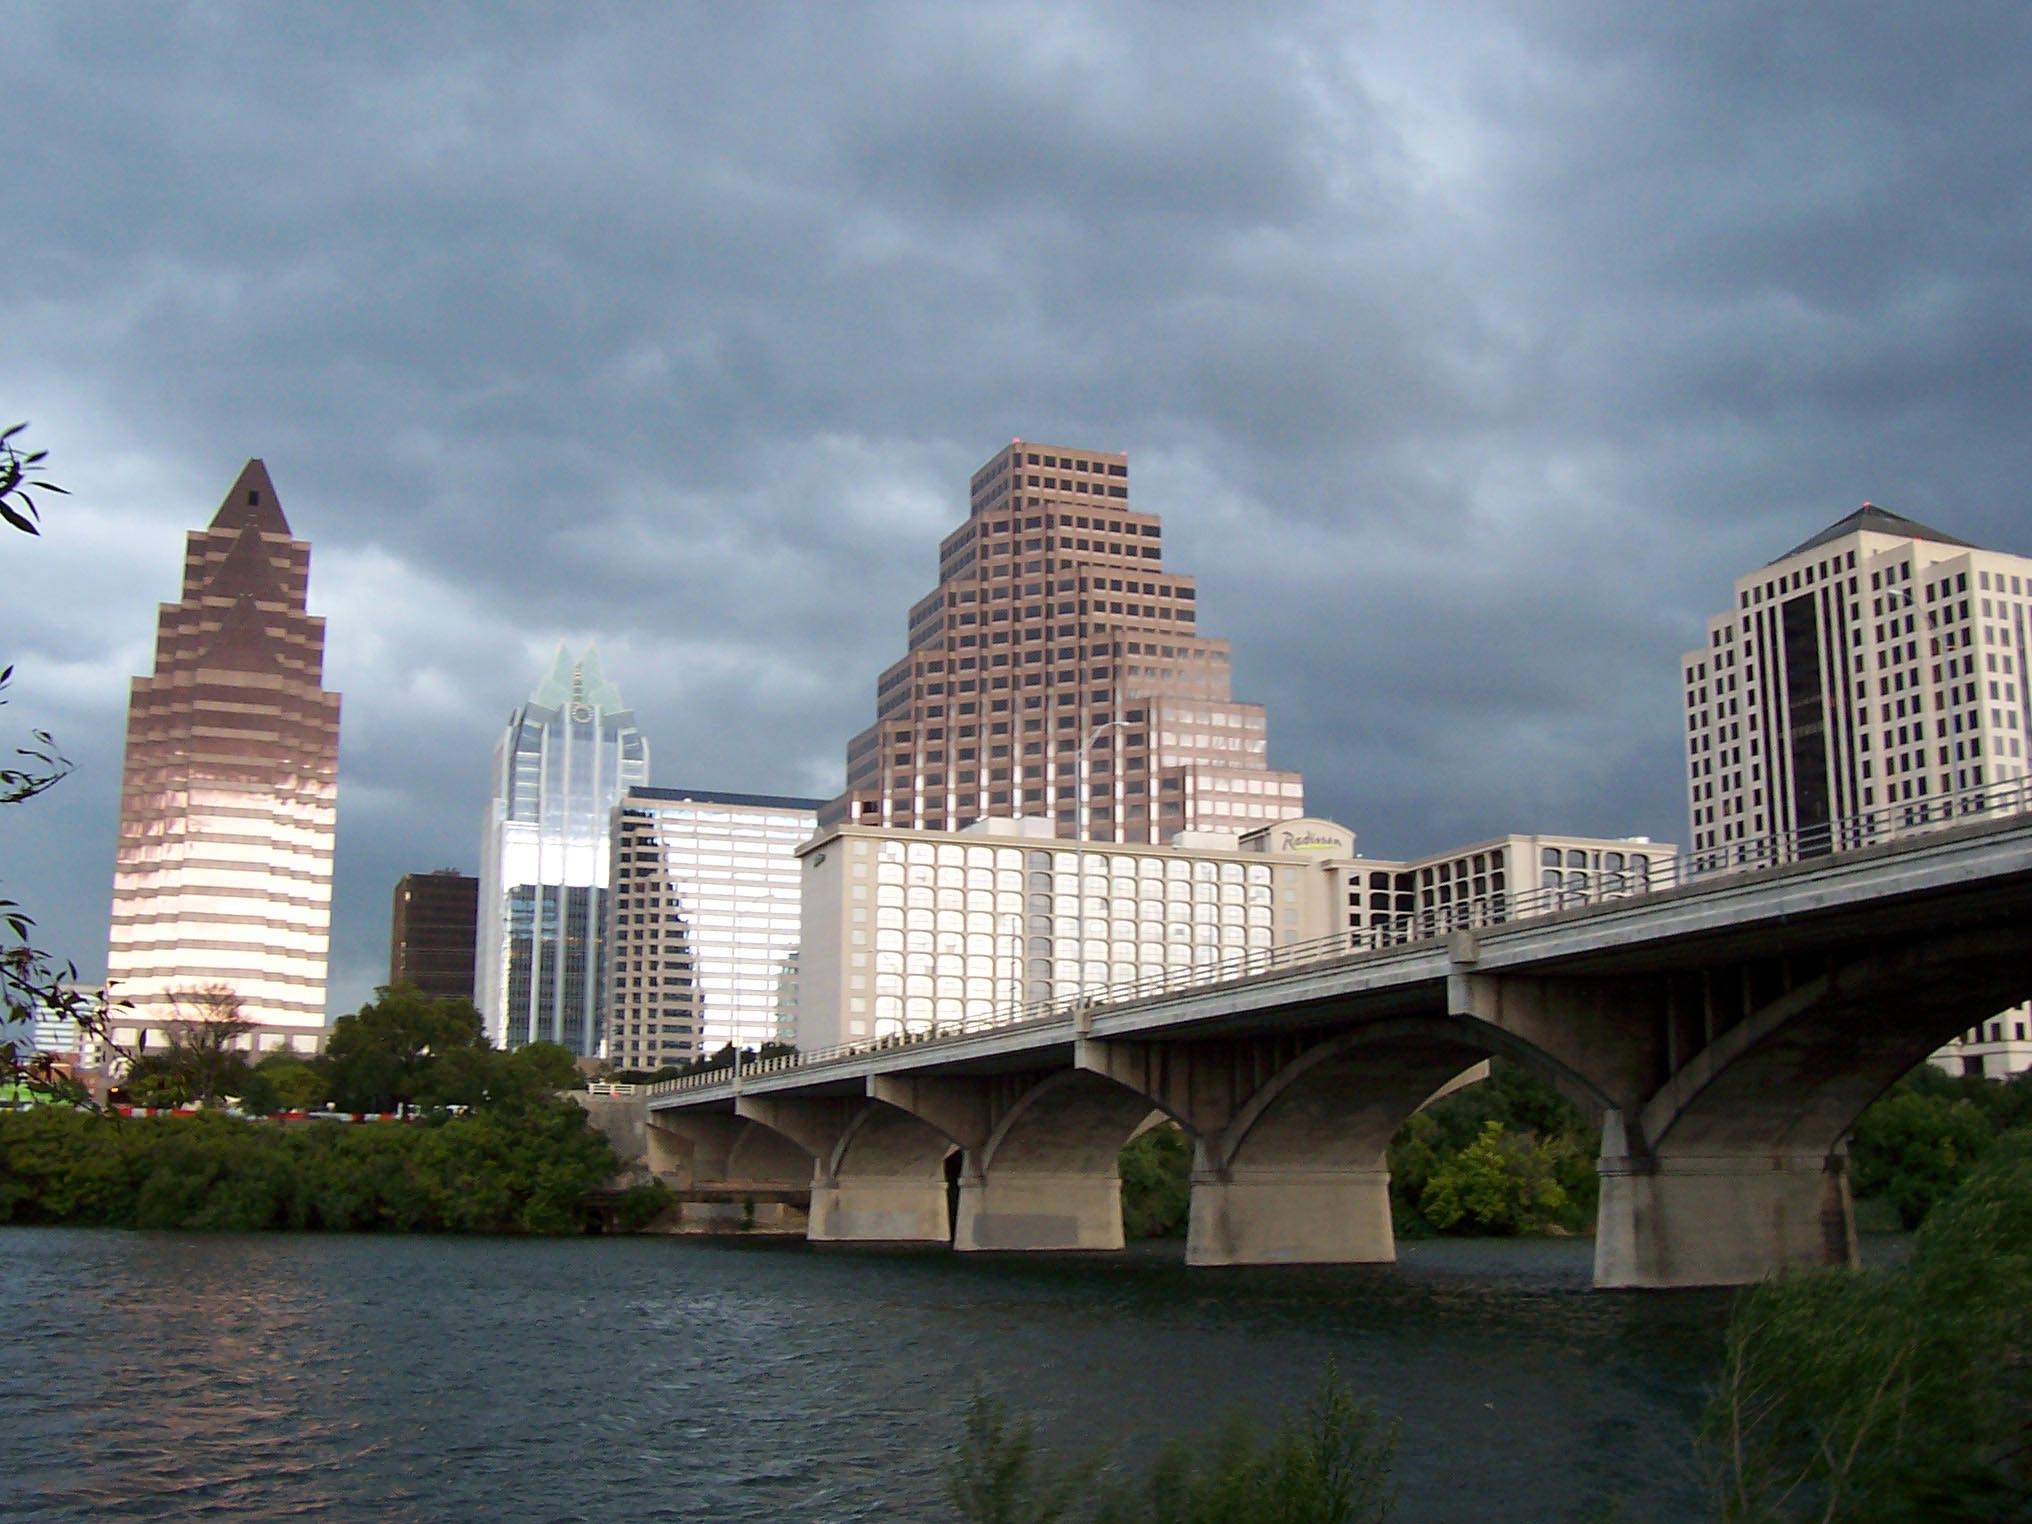 Building in the Austin downtown, seen from under a bridge